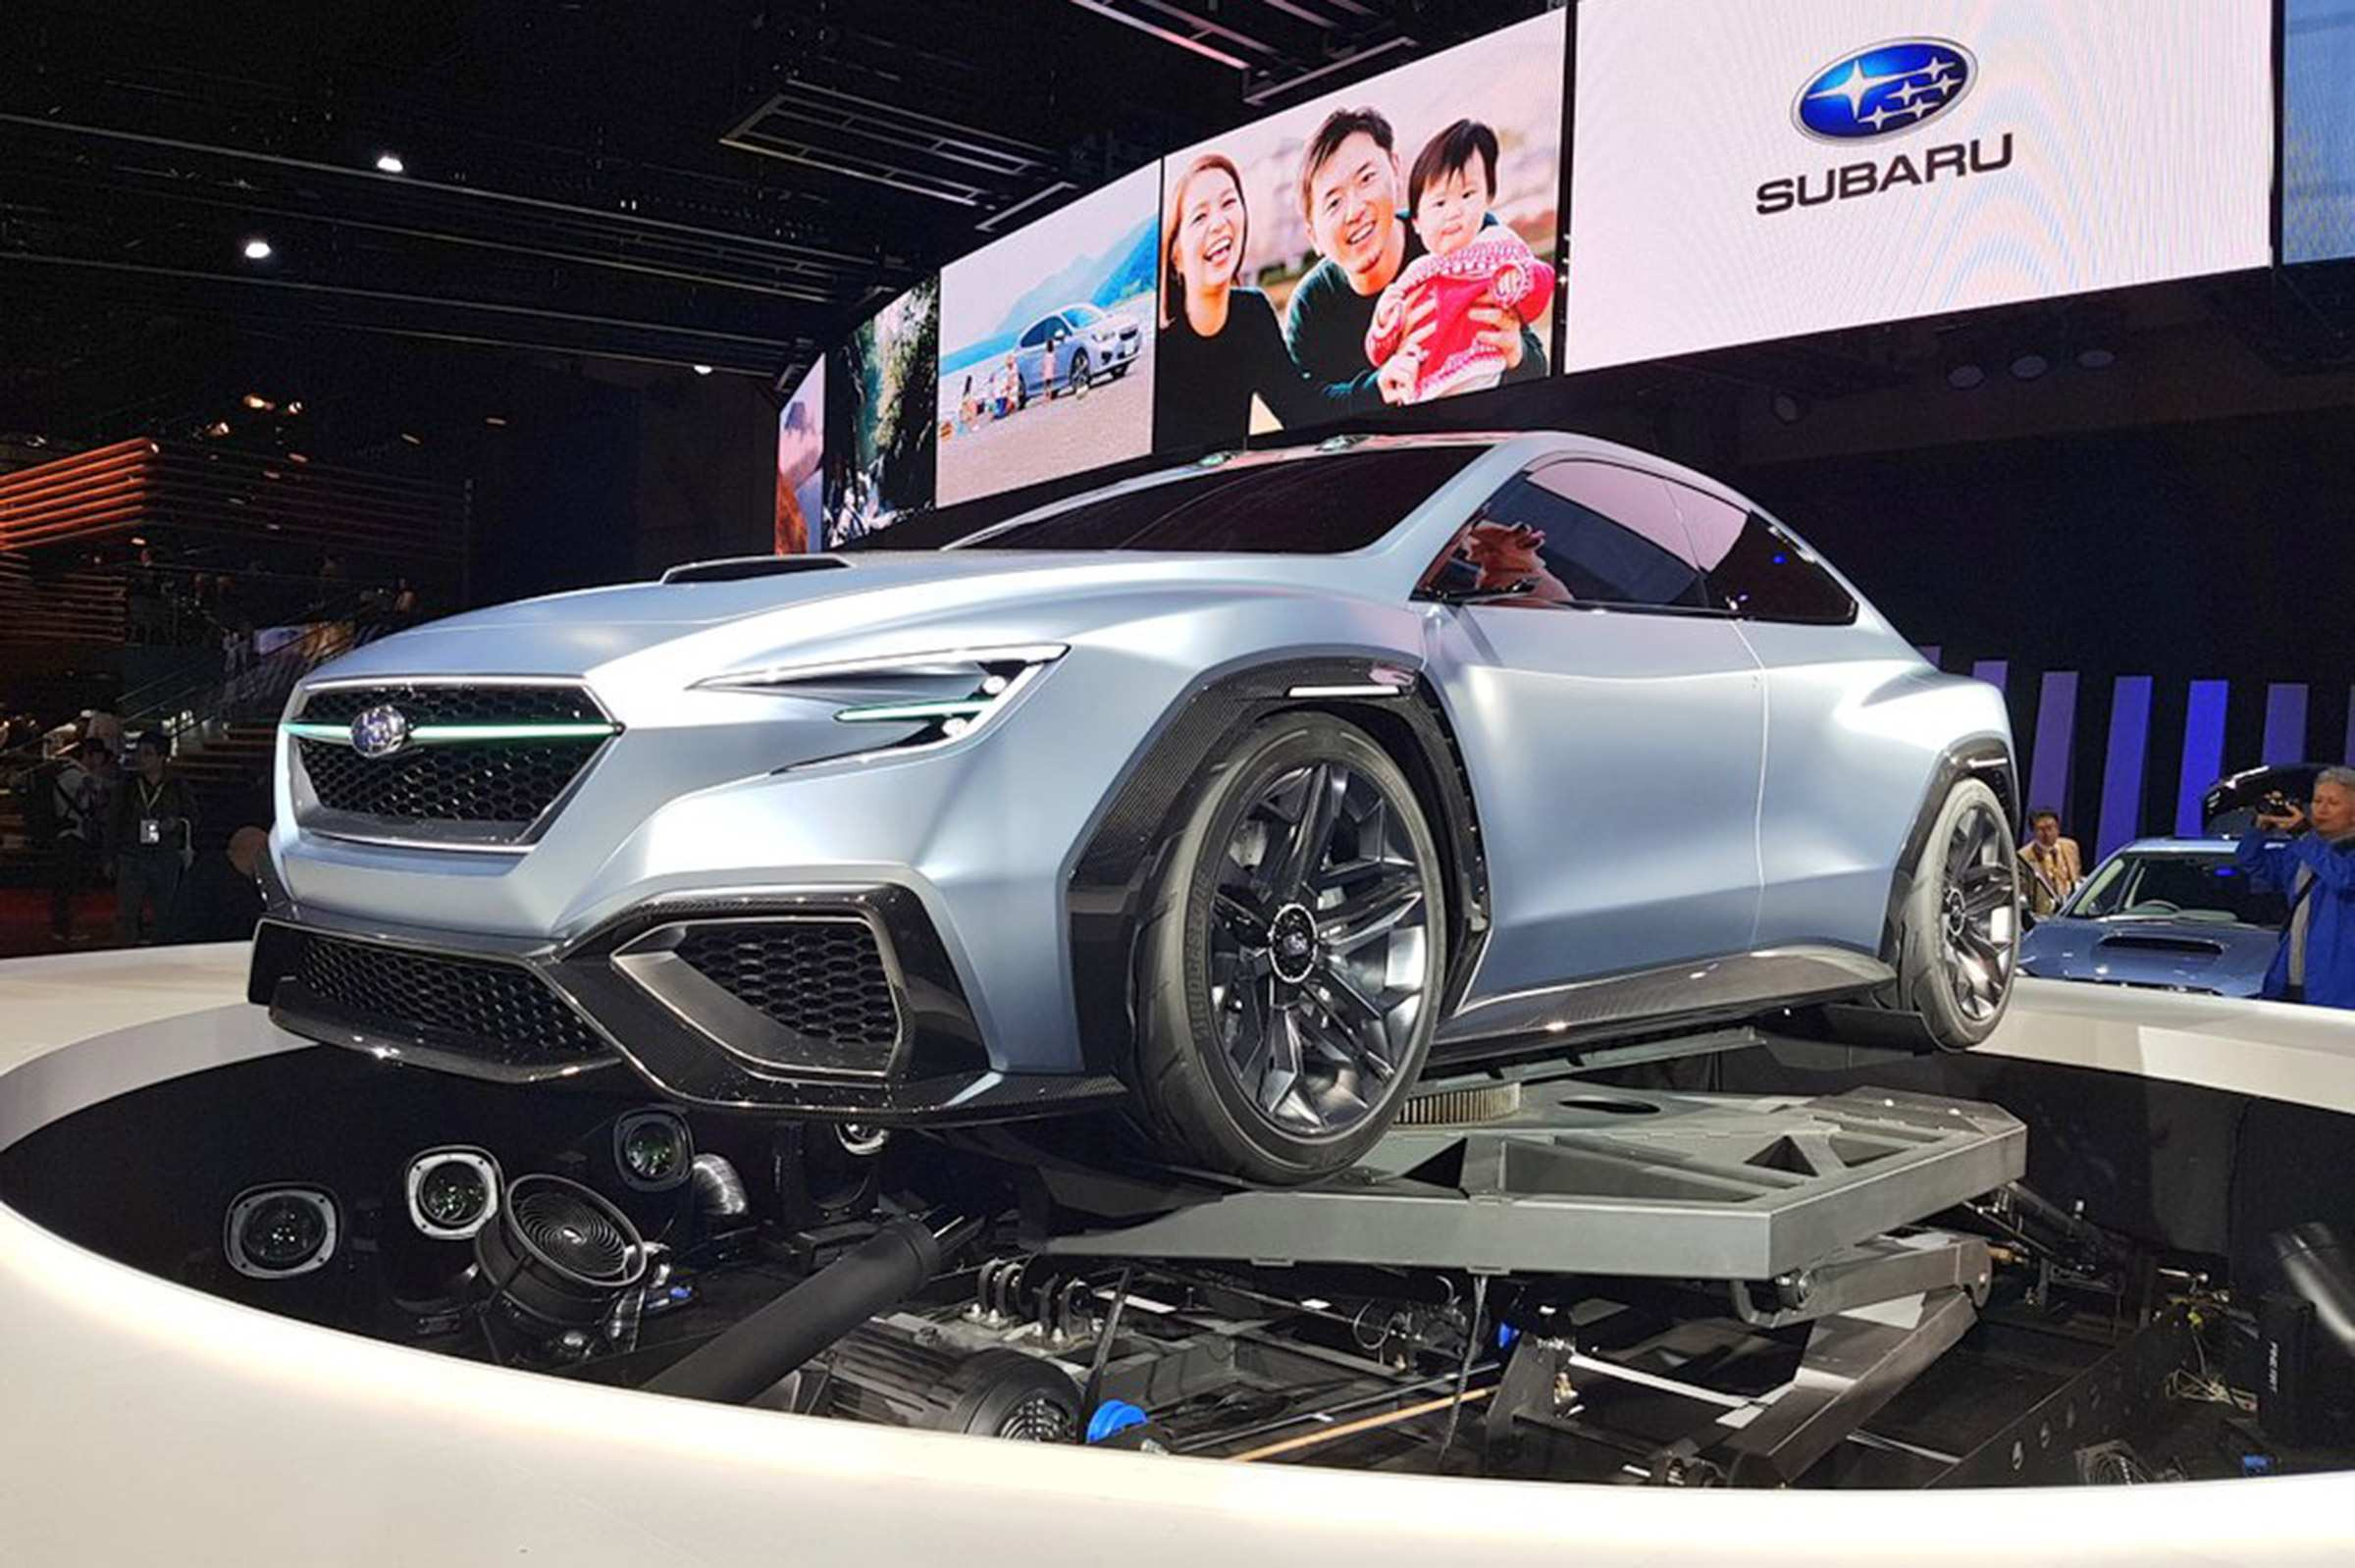 12 Concept of Nuevo Subaru 2020 Performance and New Engine by Nuevo Subaru 2020